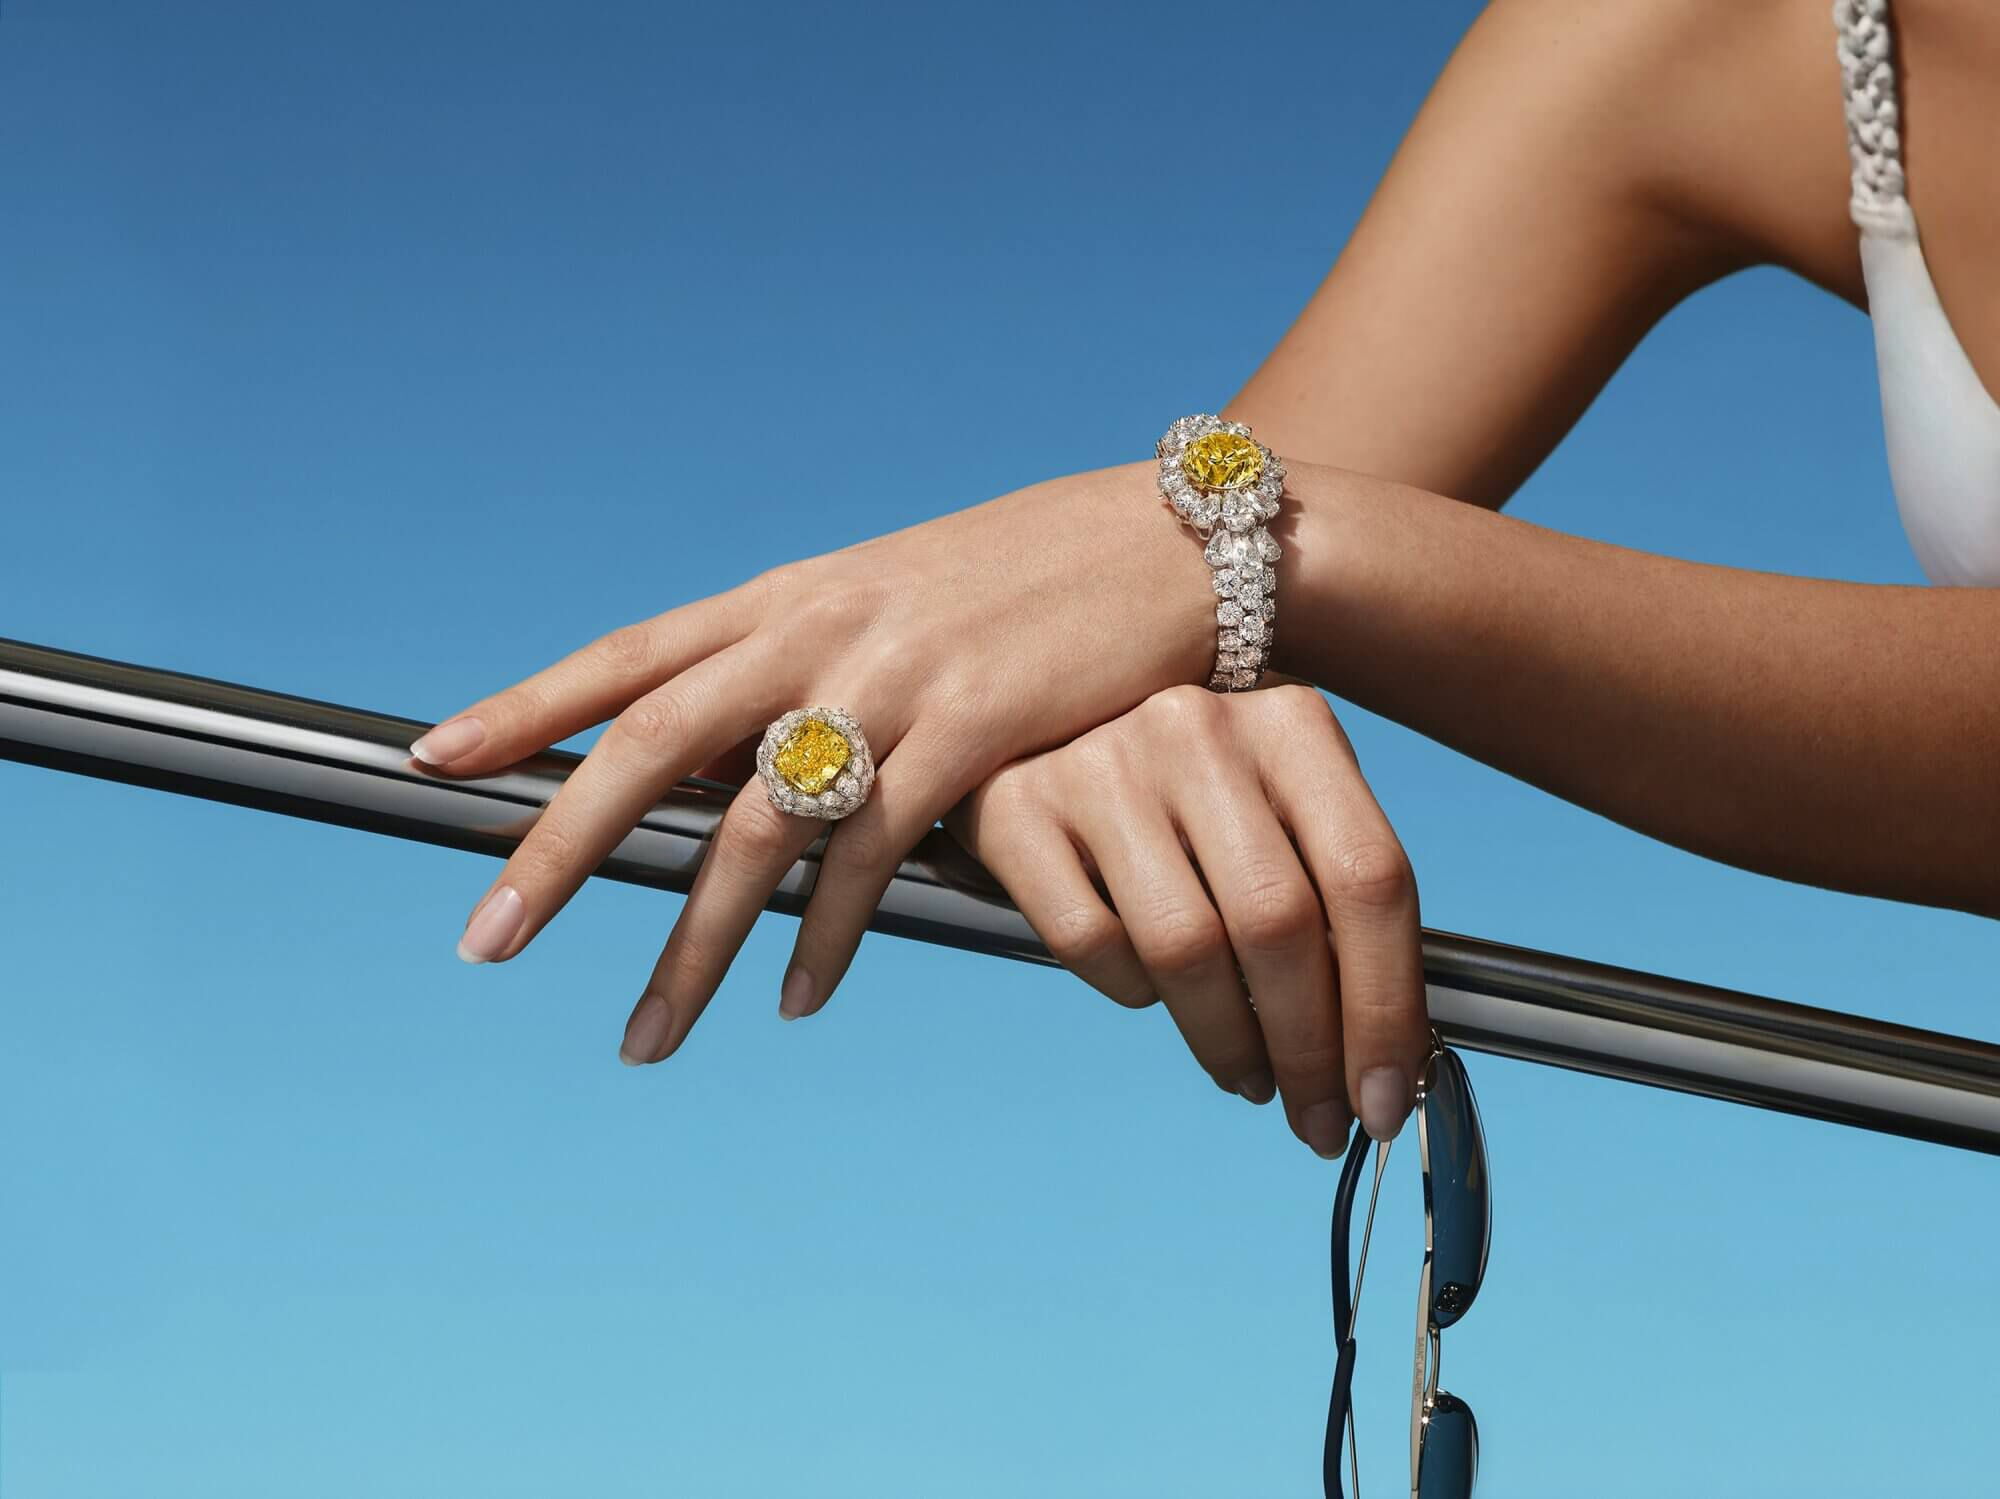 A lady on a boat wearing a yellow and white diamond Bracelet and ring from the Graff high jewellery collection